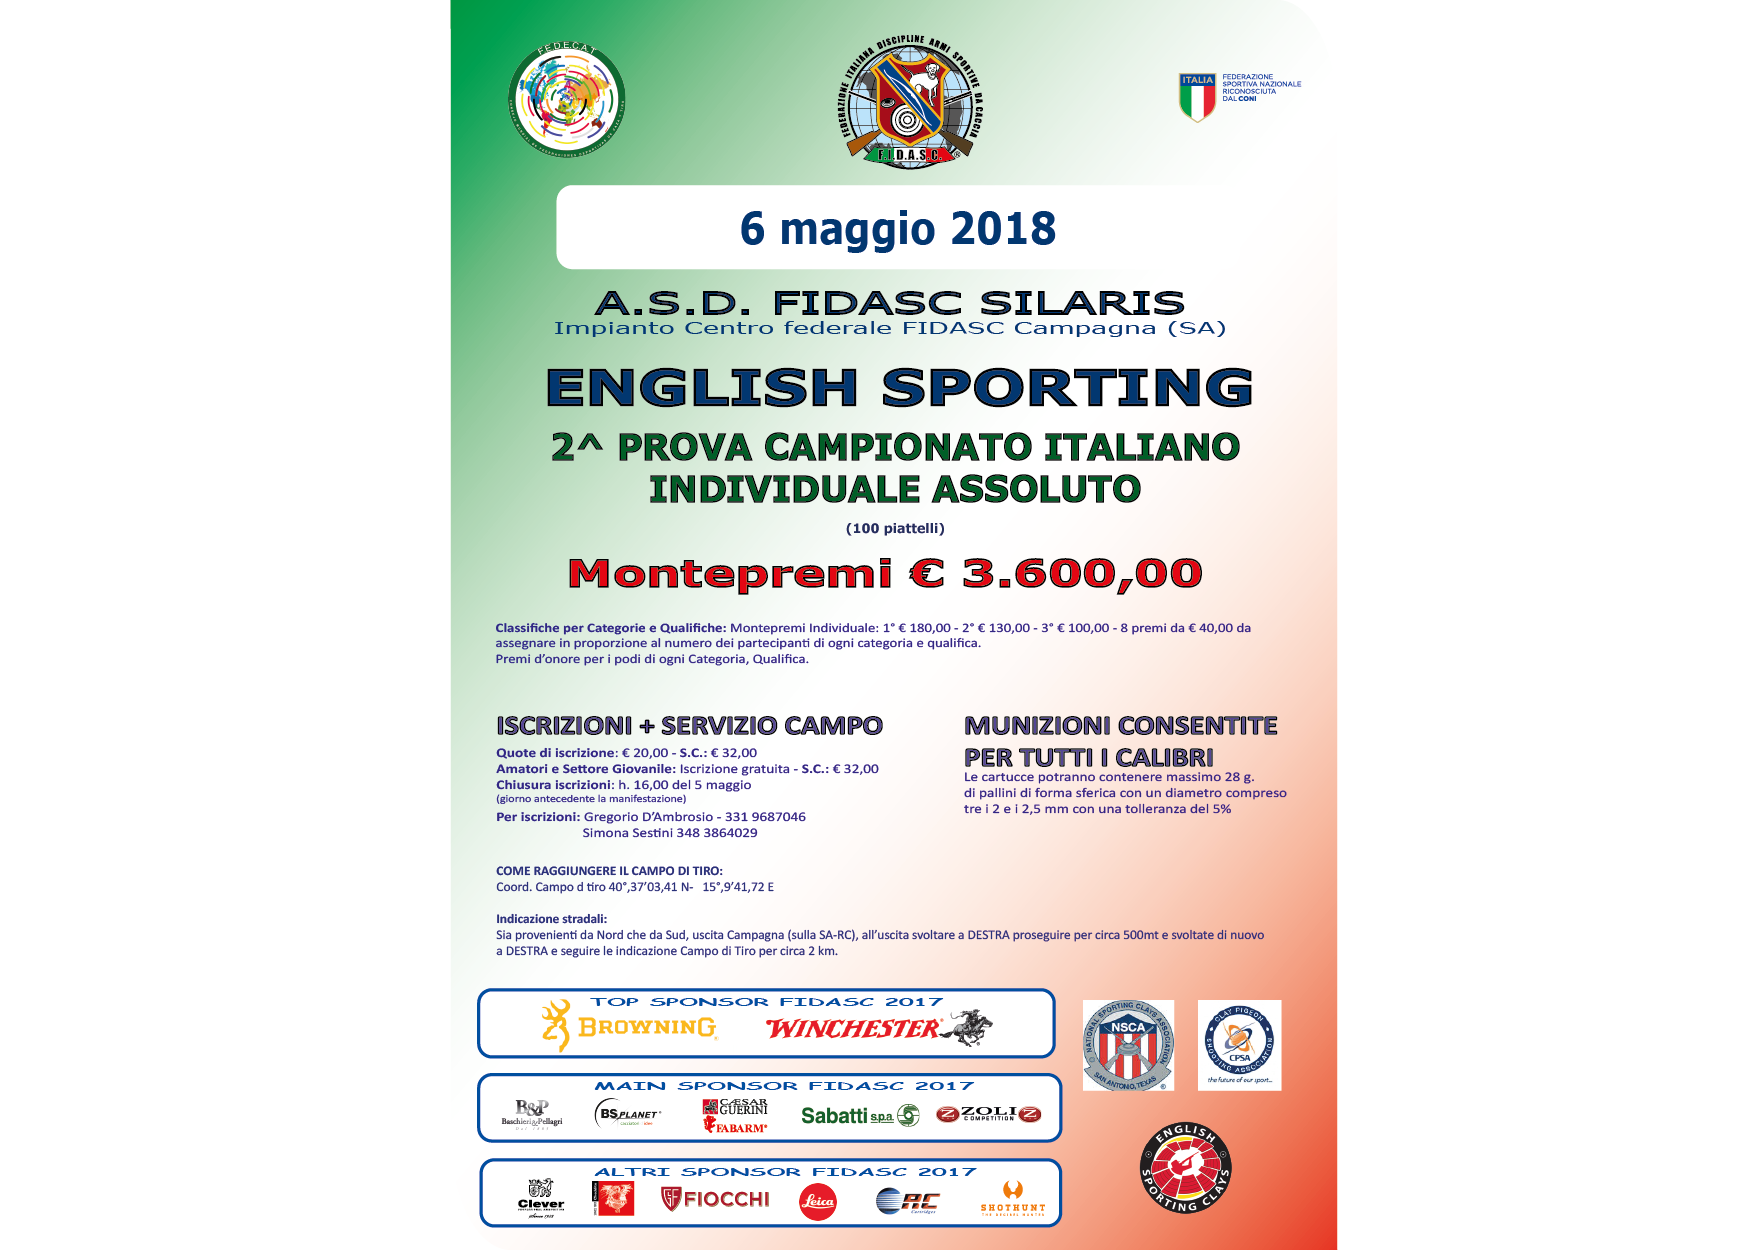 English Sporting - 2^ Prova Campionato Italiano Individuale Assoluto